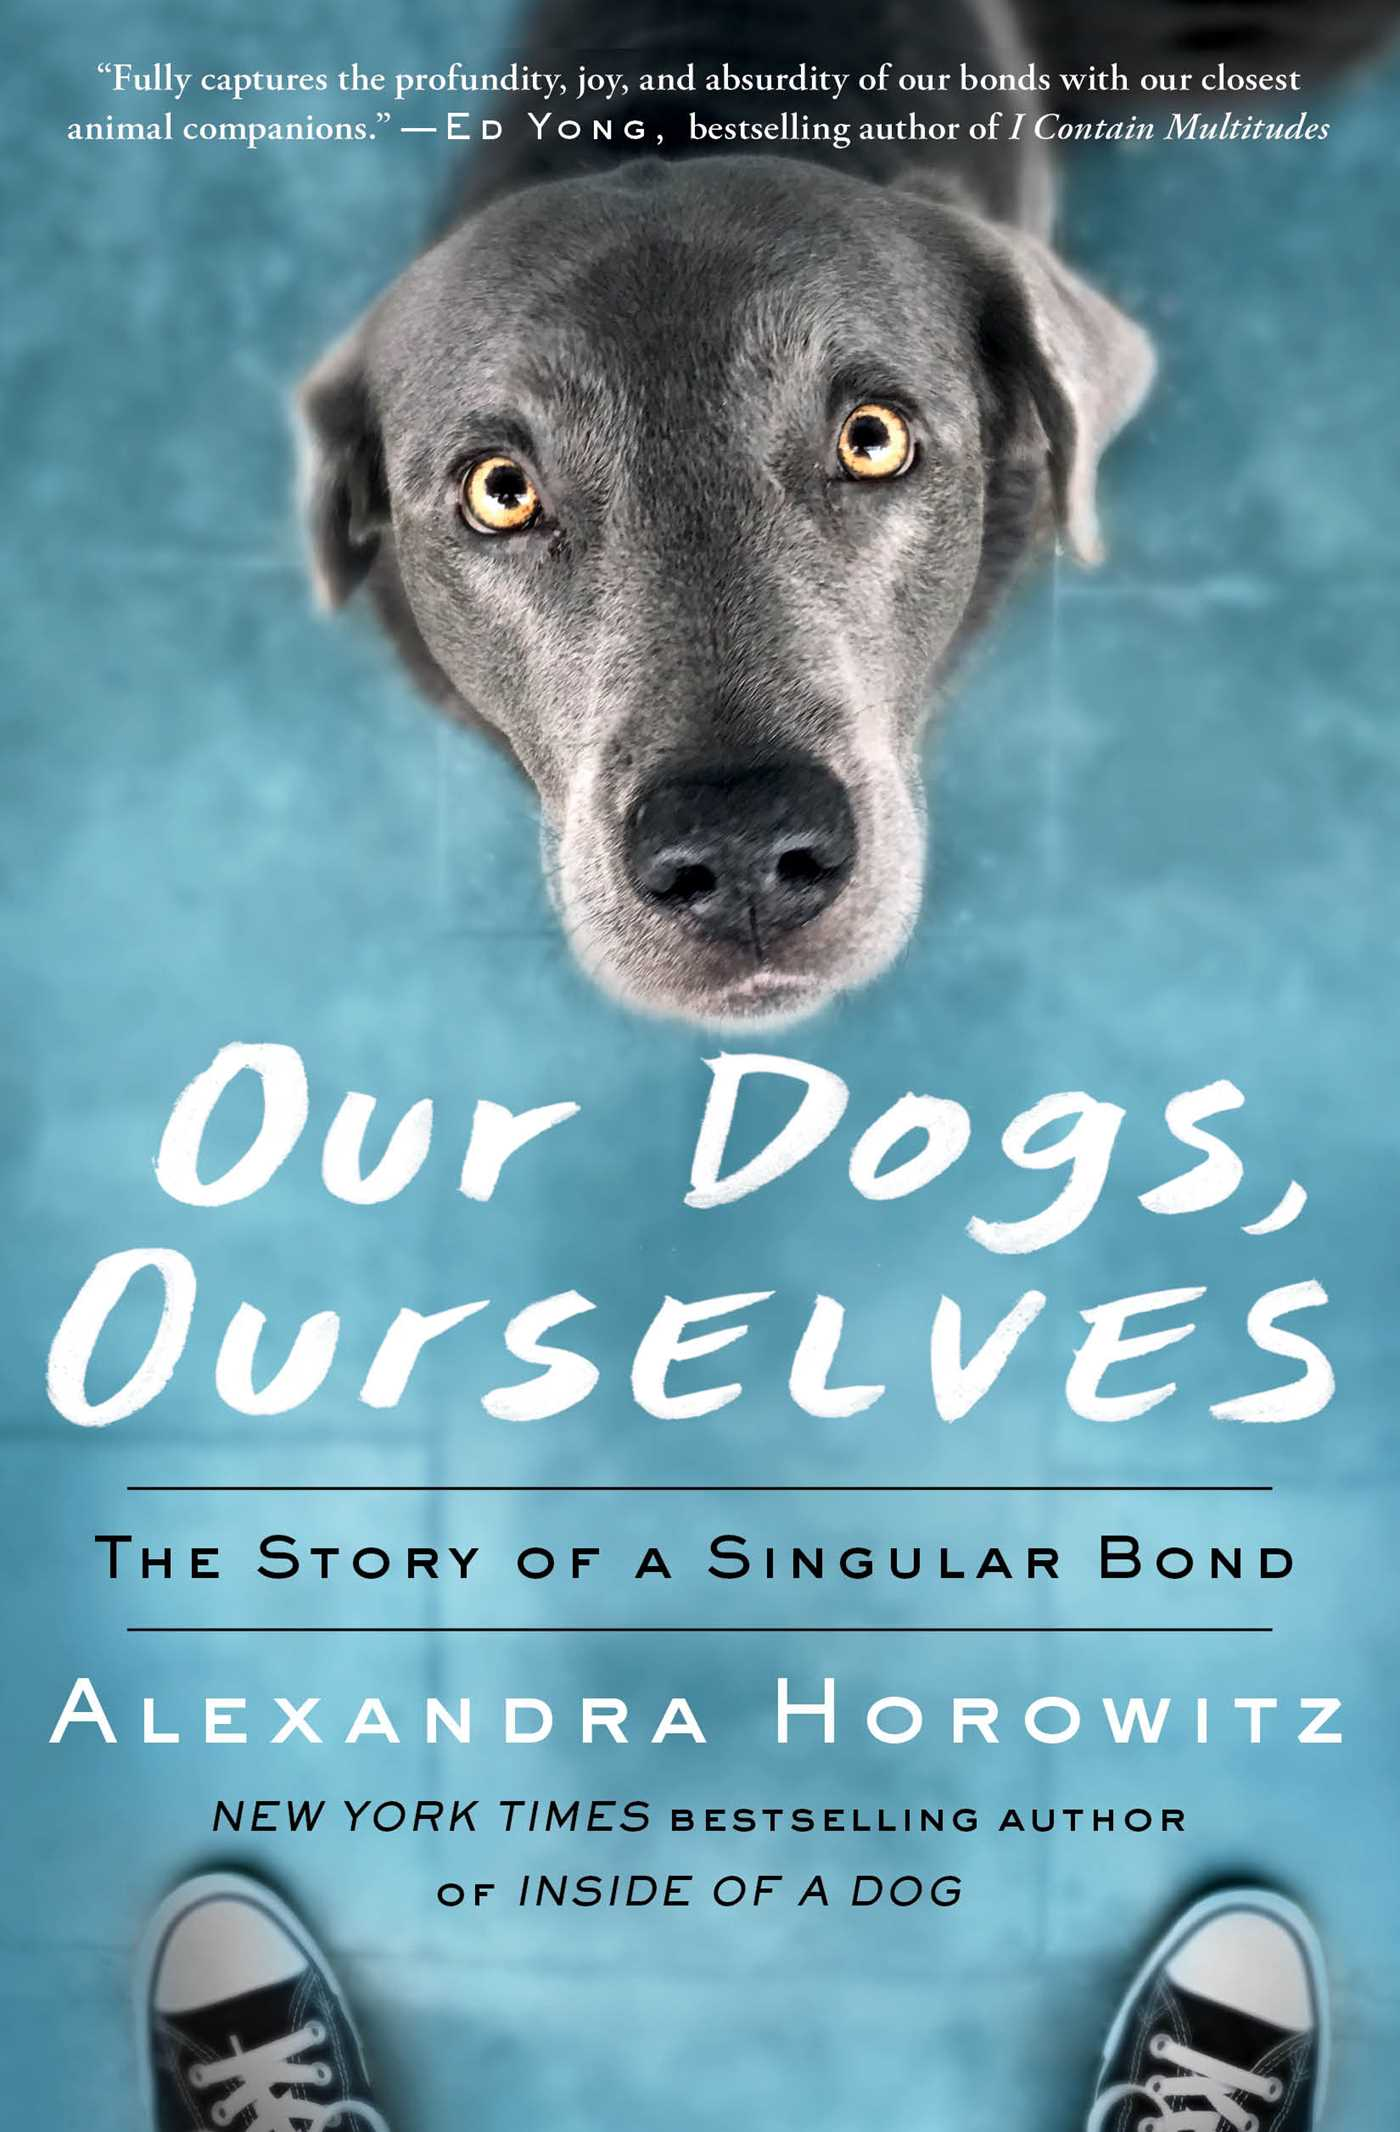 Our Dogs, Ourselves: The Story of a Singular Bond by Alexandra Horowitz